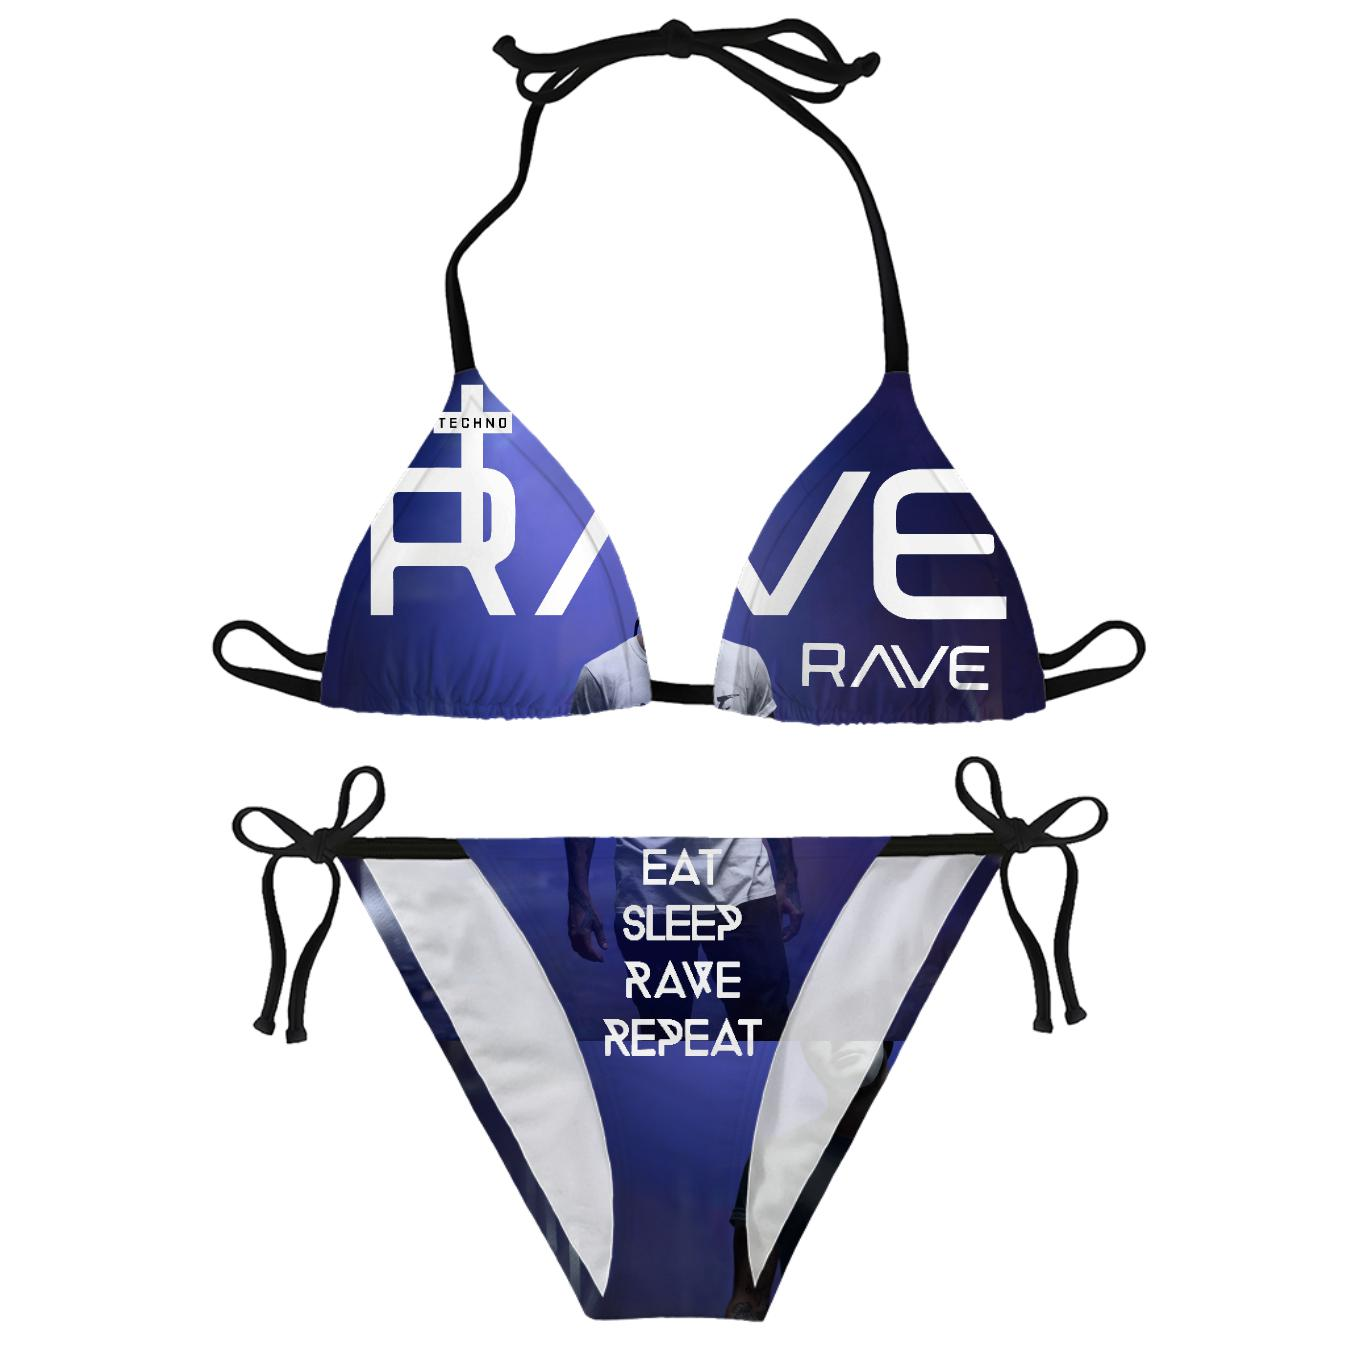 RAVE REPAT Yoda Rave On!® All-Over-360Print Bikinis Small - Rave On!® der Club & Techno Szene Shop für Coole Junge Mode Streetwear Style & Fashion Outfits + Sexy Festival 420 Stuff